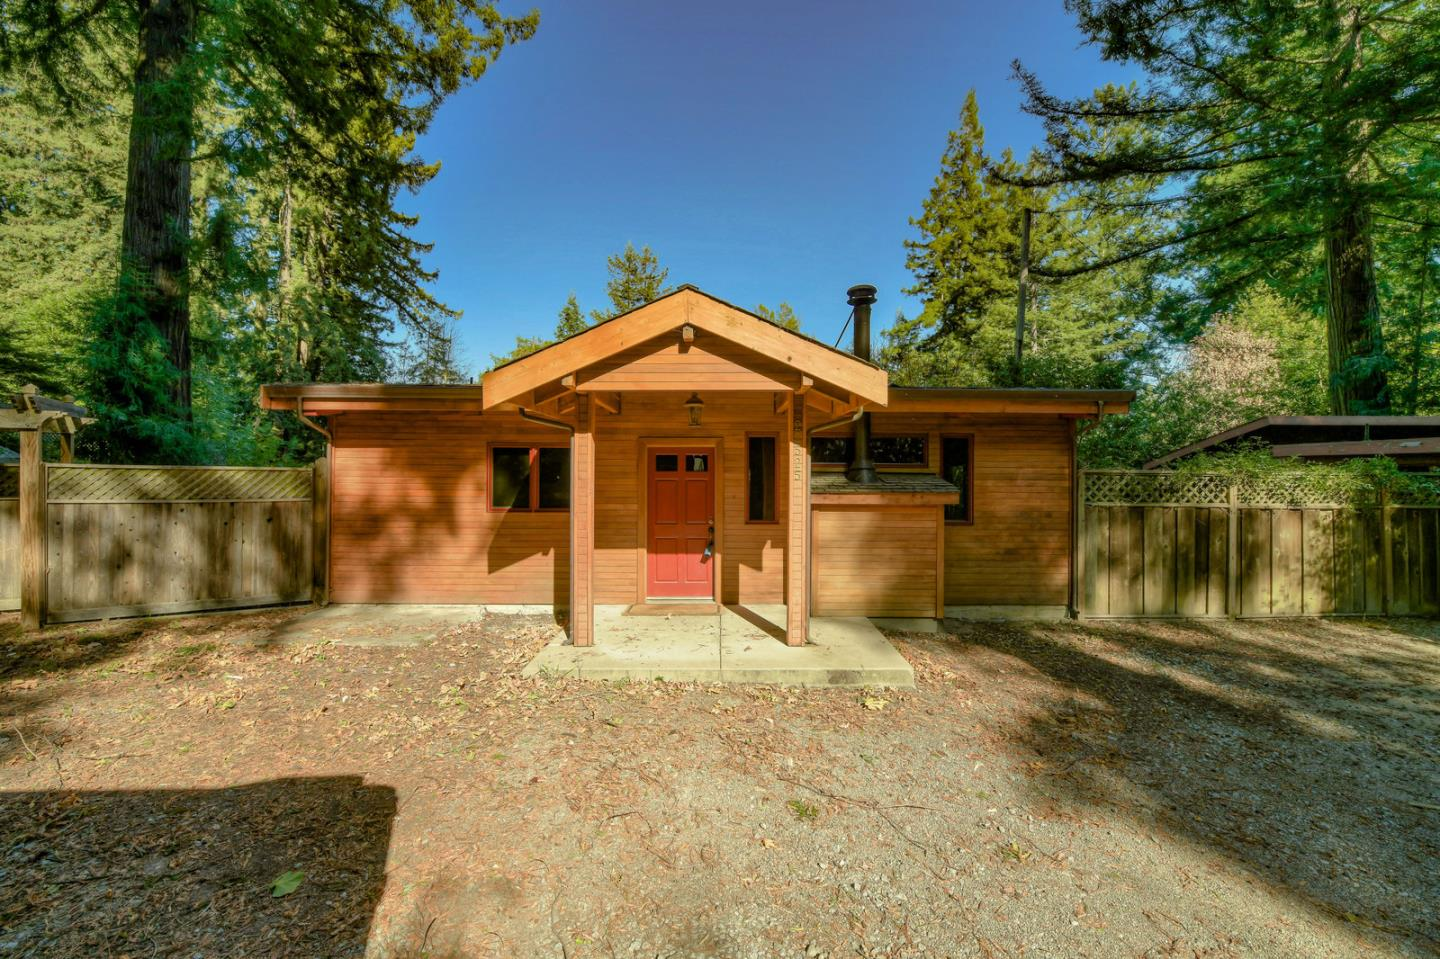 Conveniently located on nearly half an acre only 1/2 a mile from Hwy 17, set back from Summit Rd. Set on a flat lot with lots of sun exposure with room to expand. This charming single story home boasts an open floor plan with vaulted ceilings, exposed beams, hardwood floors throughout & Sierra Pacific dual pane windows. Gourmet kitchen with large island and granite counter tops. Spacious private back yard with mountain views. Detached office/art studio. 2 car detached garage. Excellent schools - Loma Prieta Elementary, CT English Middle, Los Gatos High.